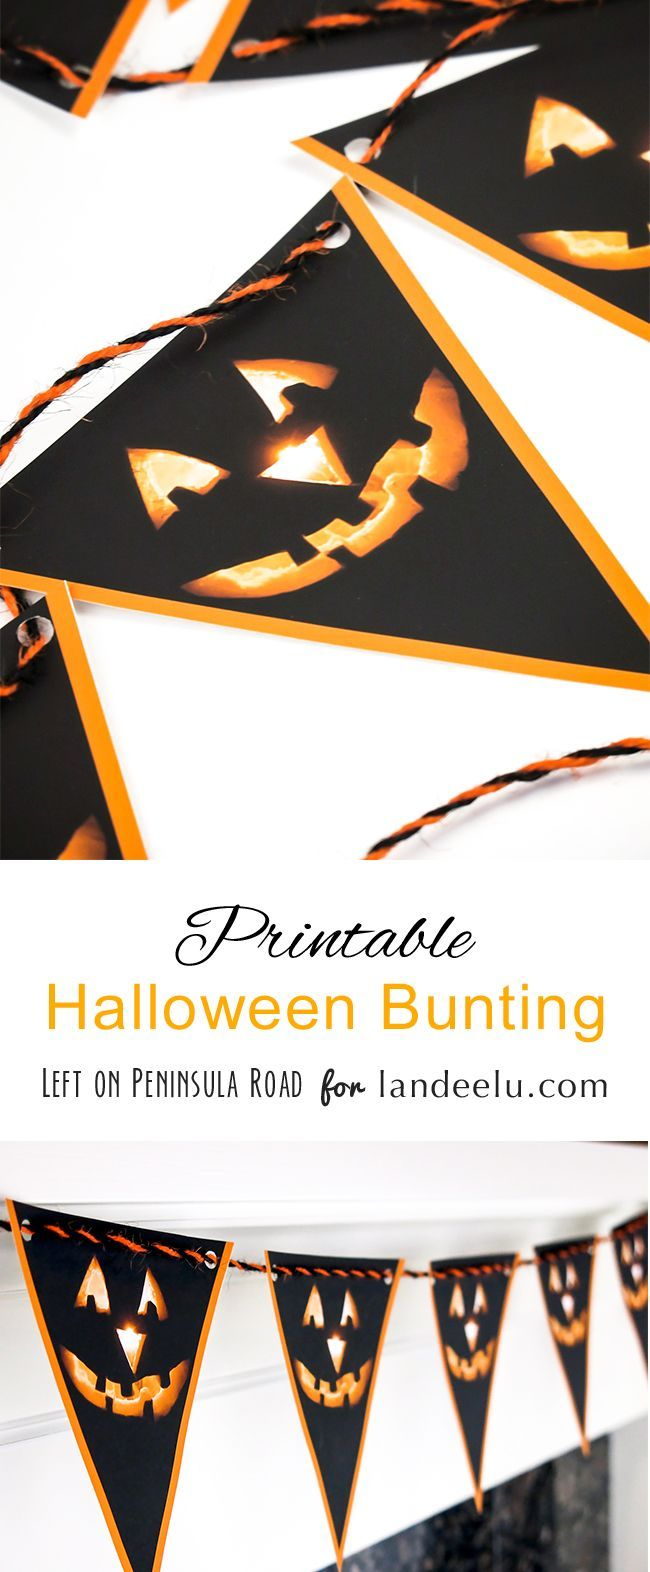 FREE Printable Jack-o'-lantern Halloween Bunting Decoration